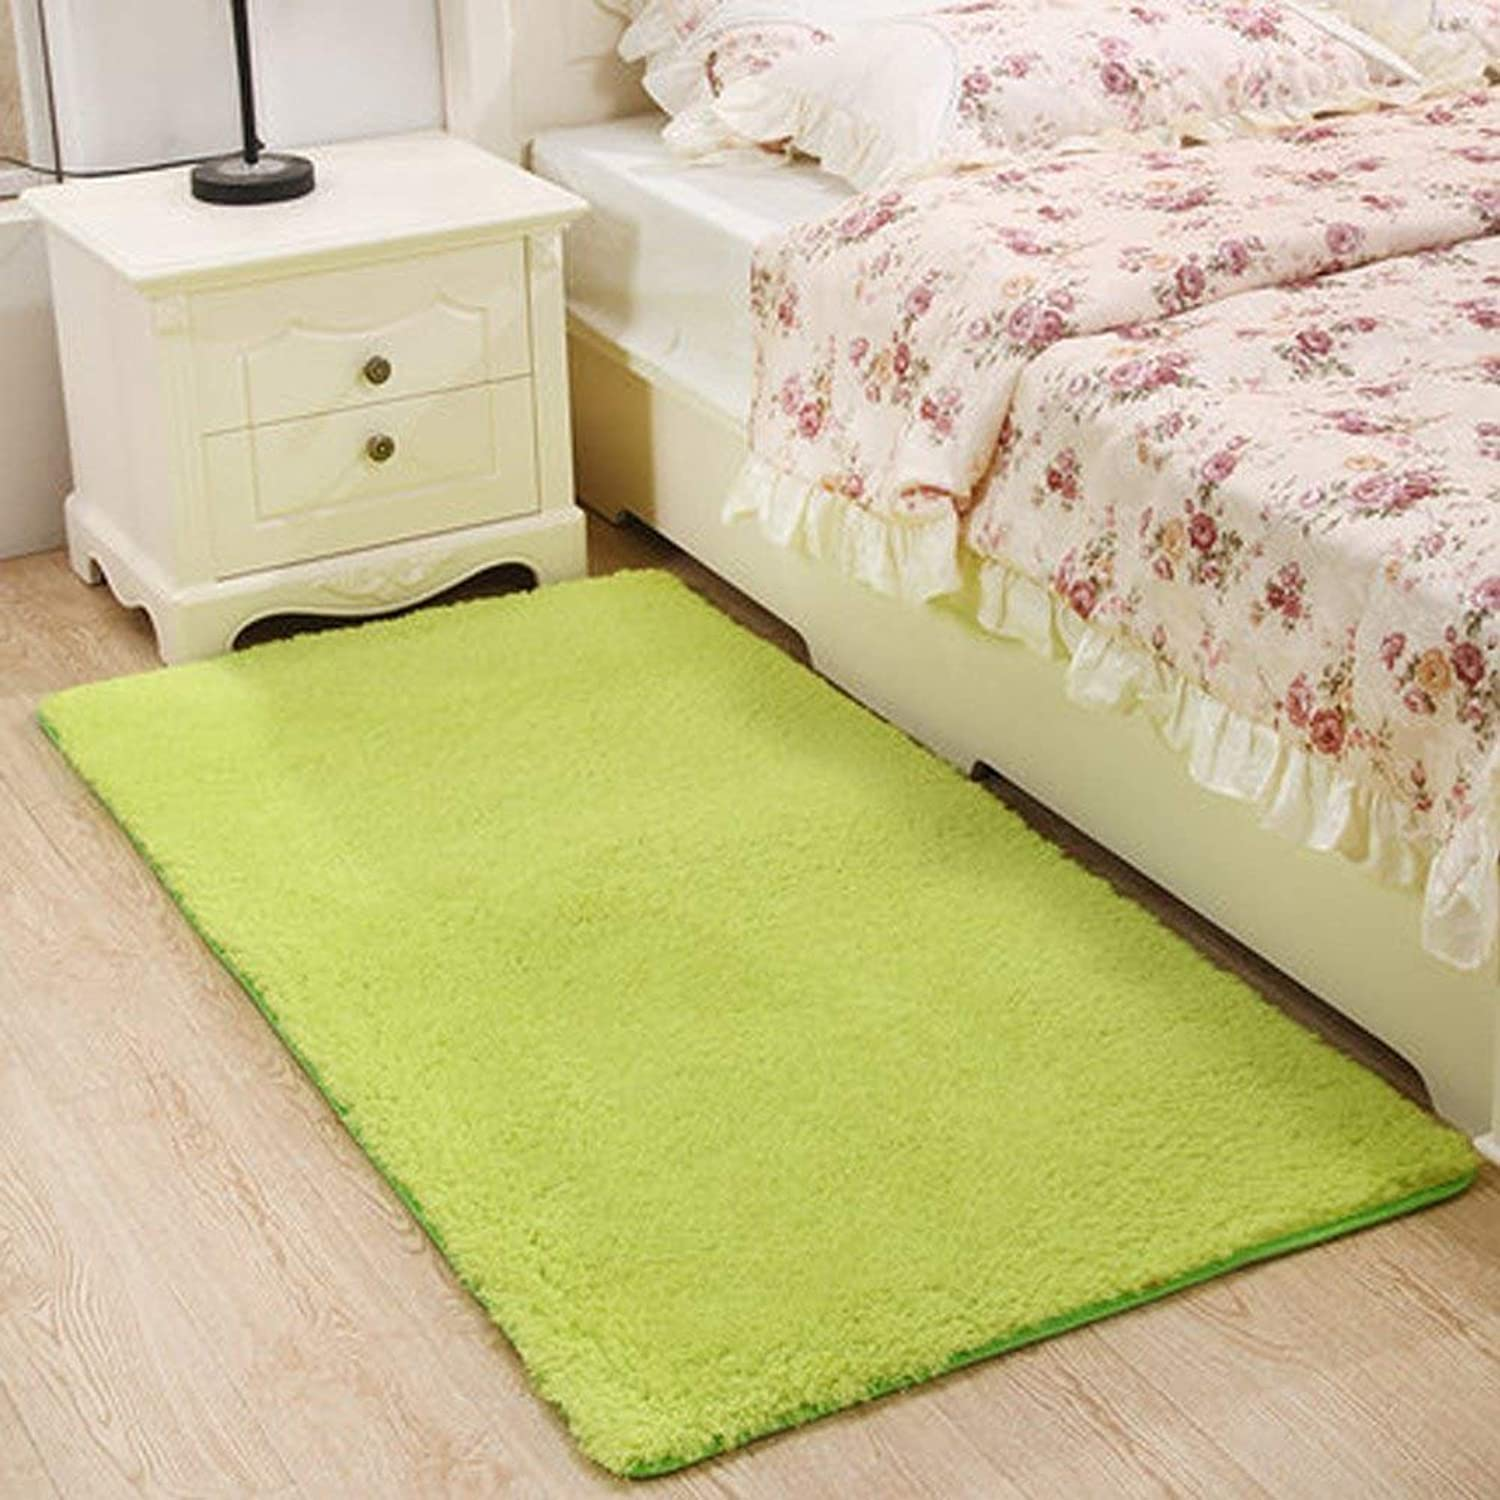 Padded Washable Carpets Carpets of The Bedside (color Green, Size  80x160cm)